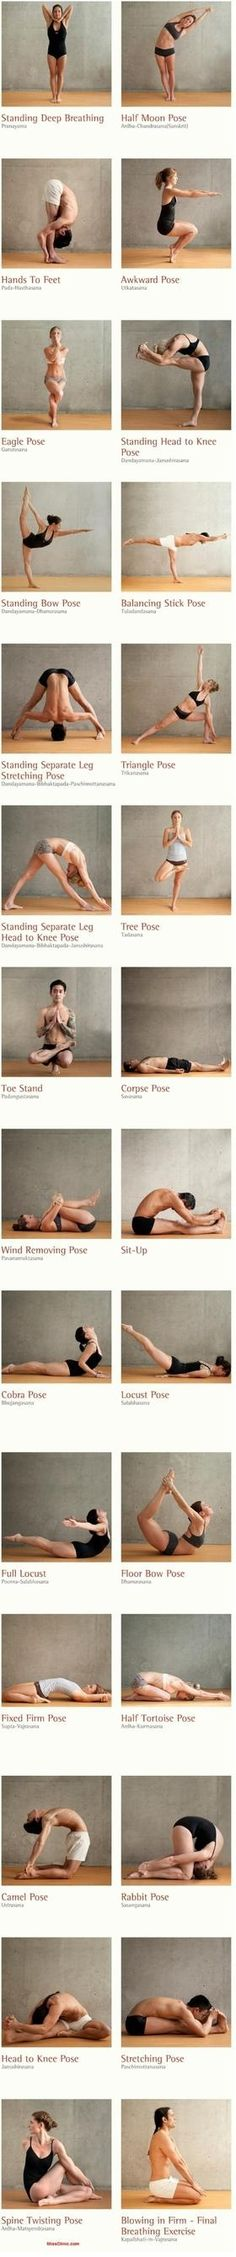 nice Bikram yoga poses that invigorate by stimulating the organs, glands, and nerves